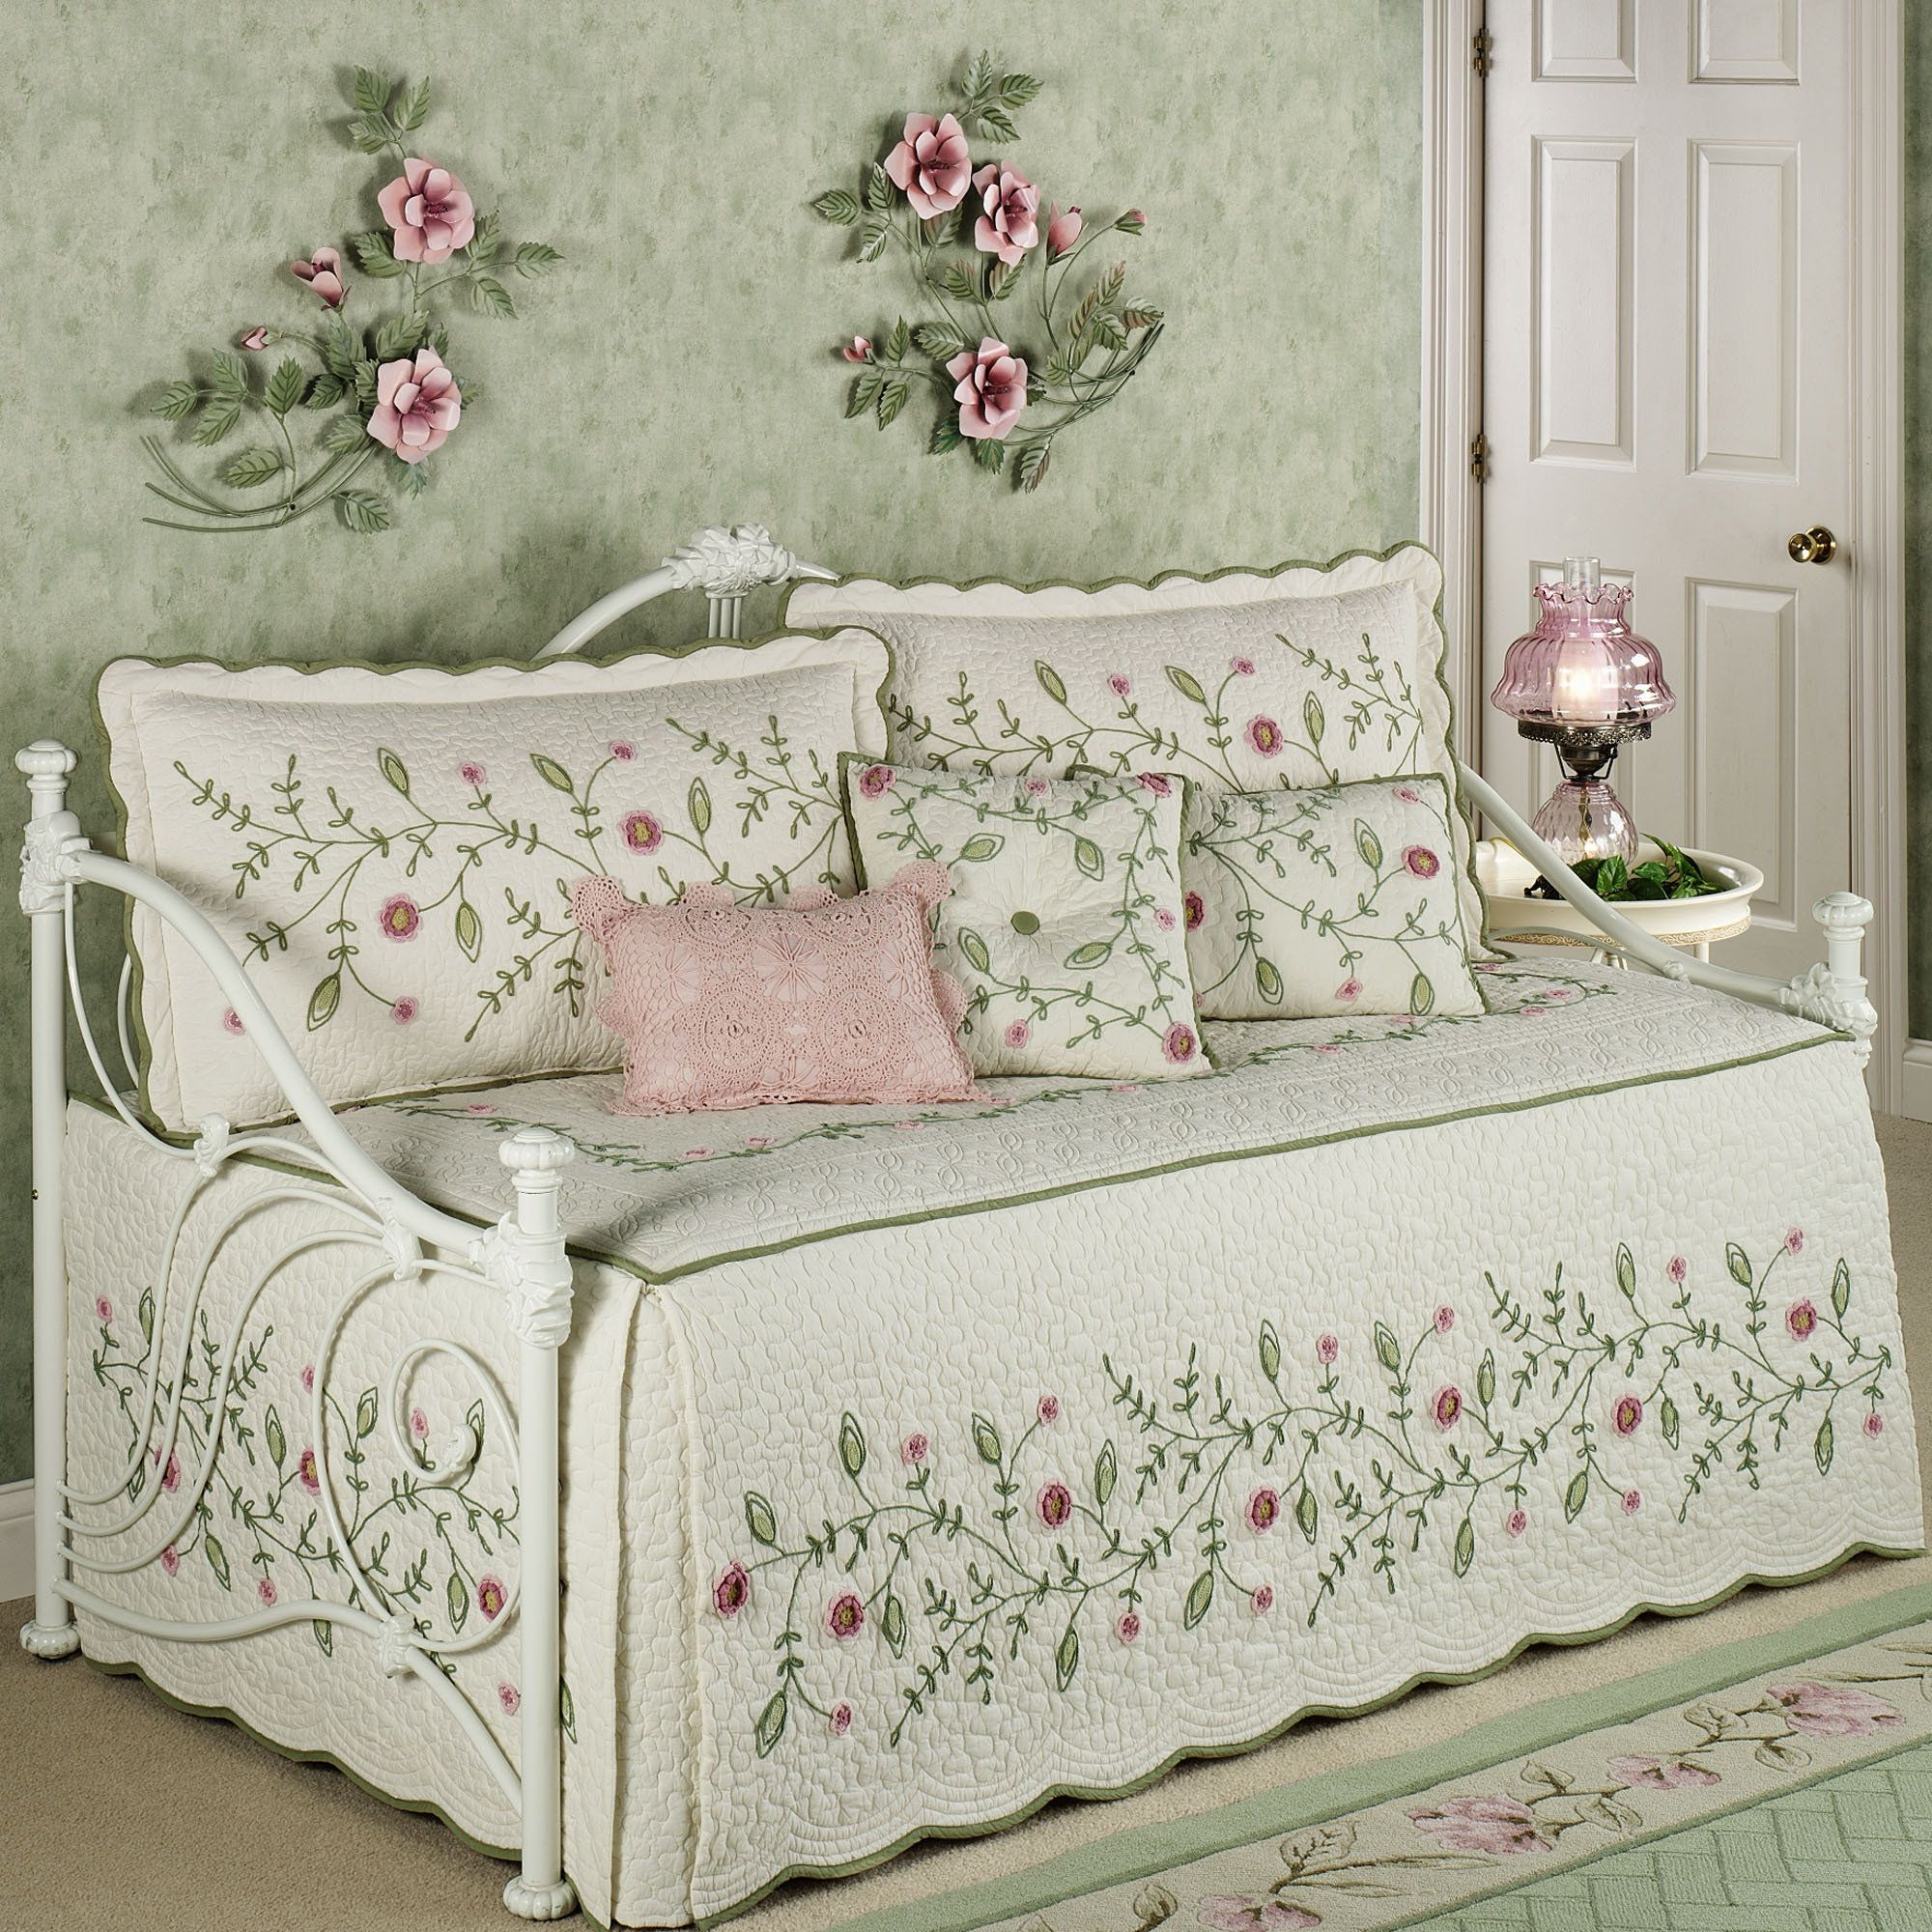 set bedding quilt ruffled floral flax daybed quilts rose p vintage